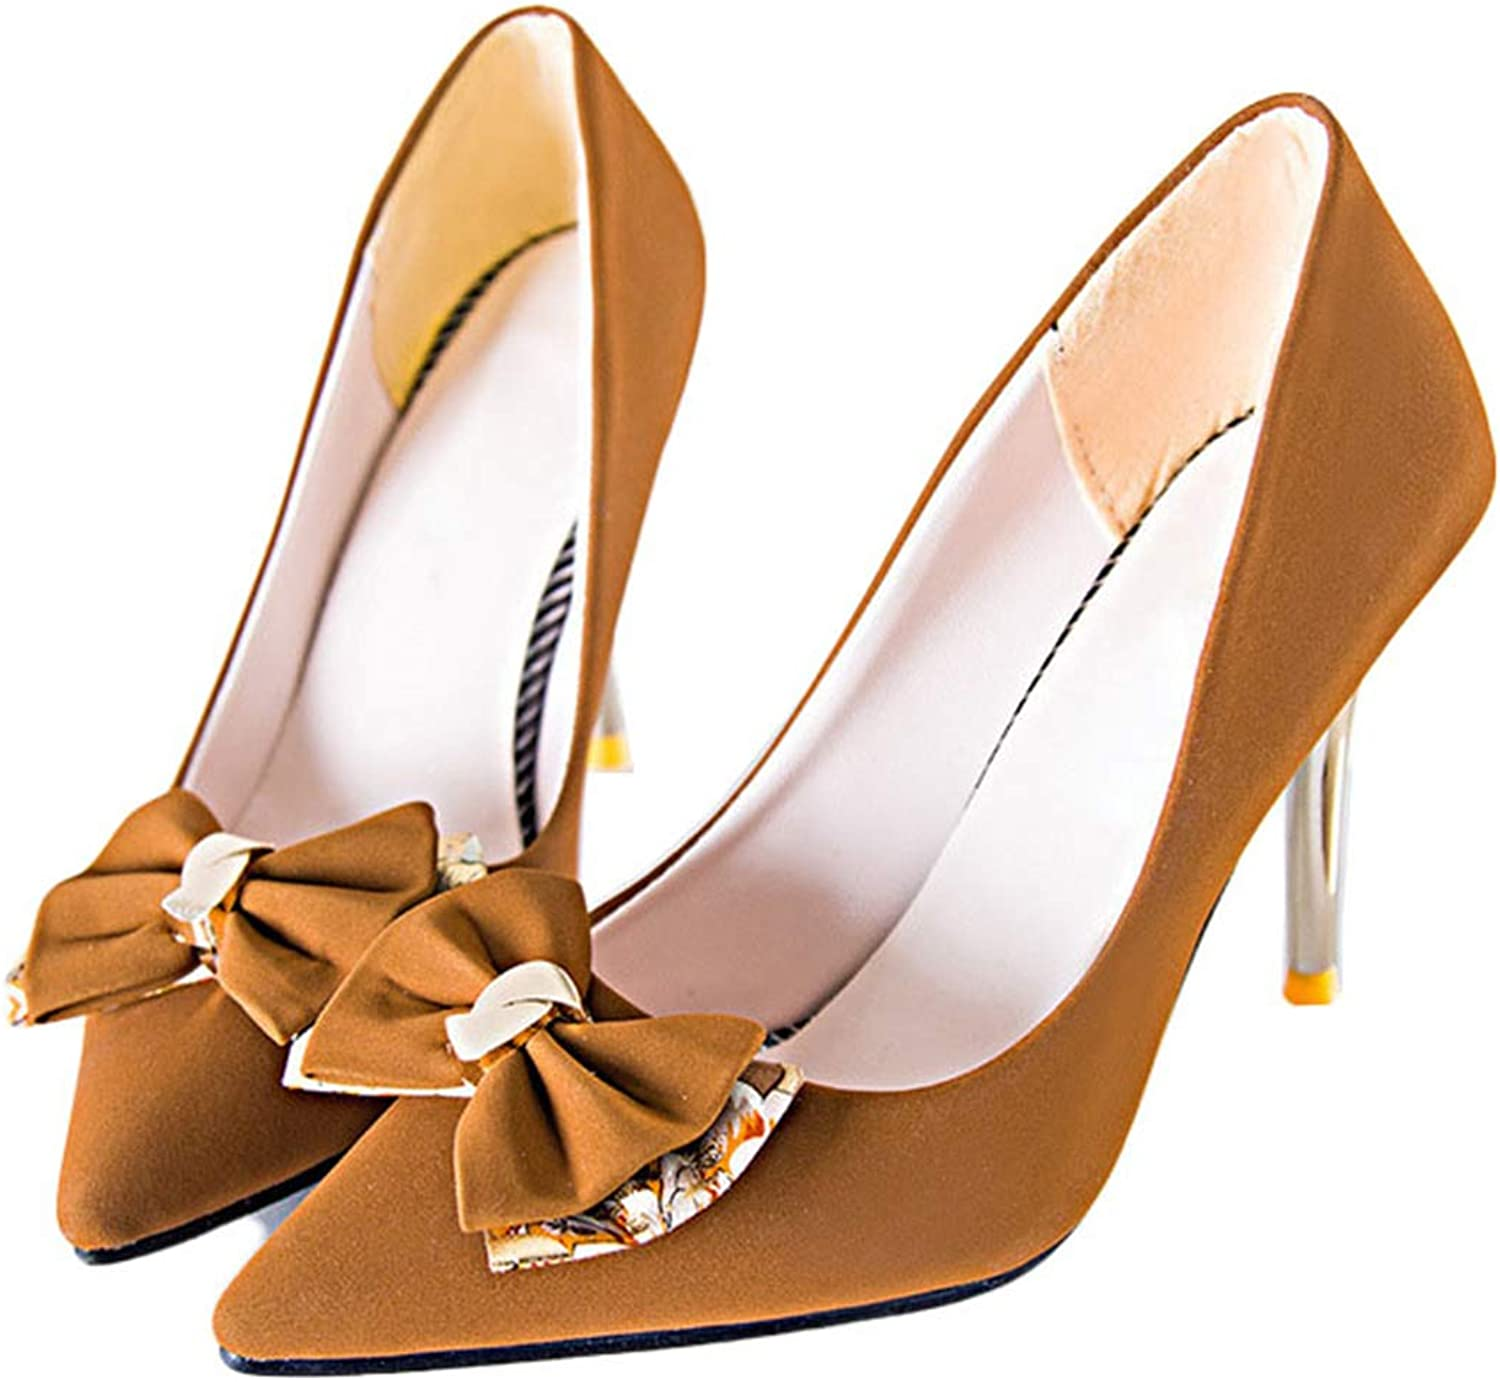 Kyle Walsh Pa Women's Pumps Bow Knot Stiletto Pointed Toe Female Casual High-Heeled shoes